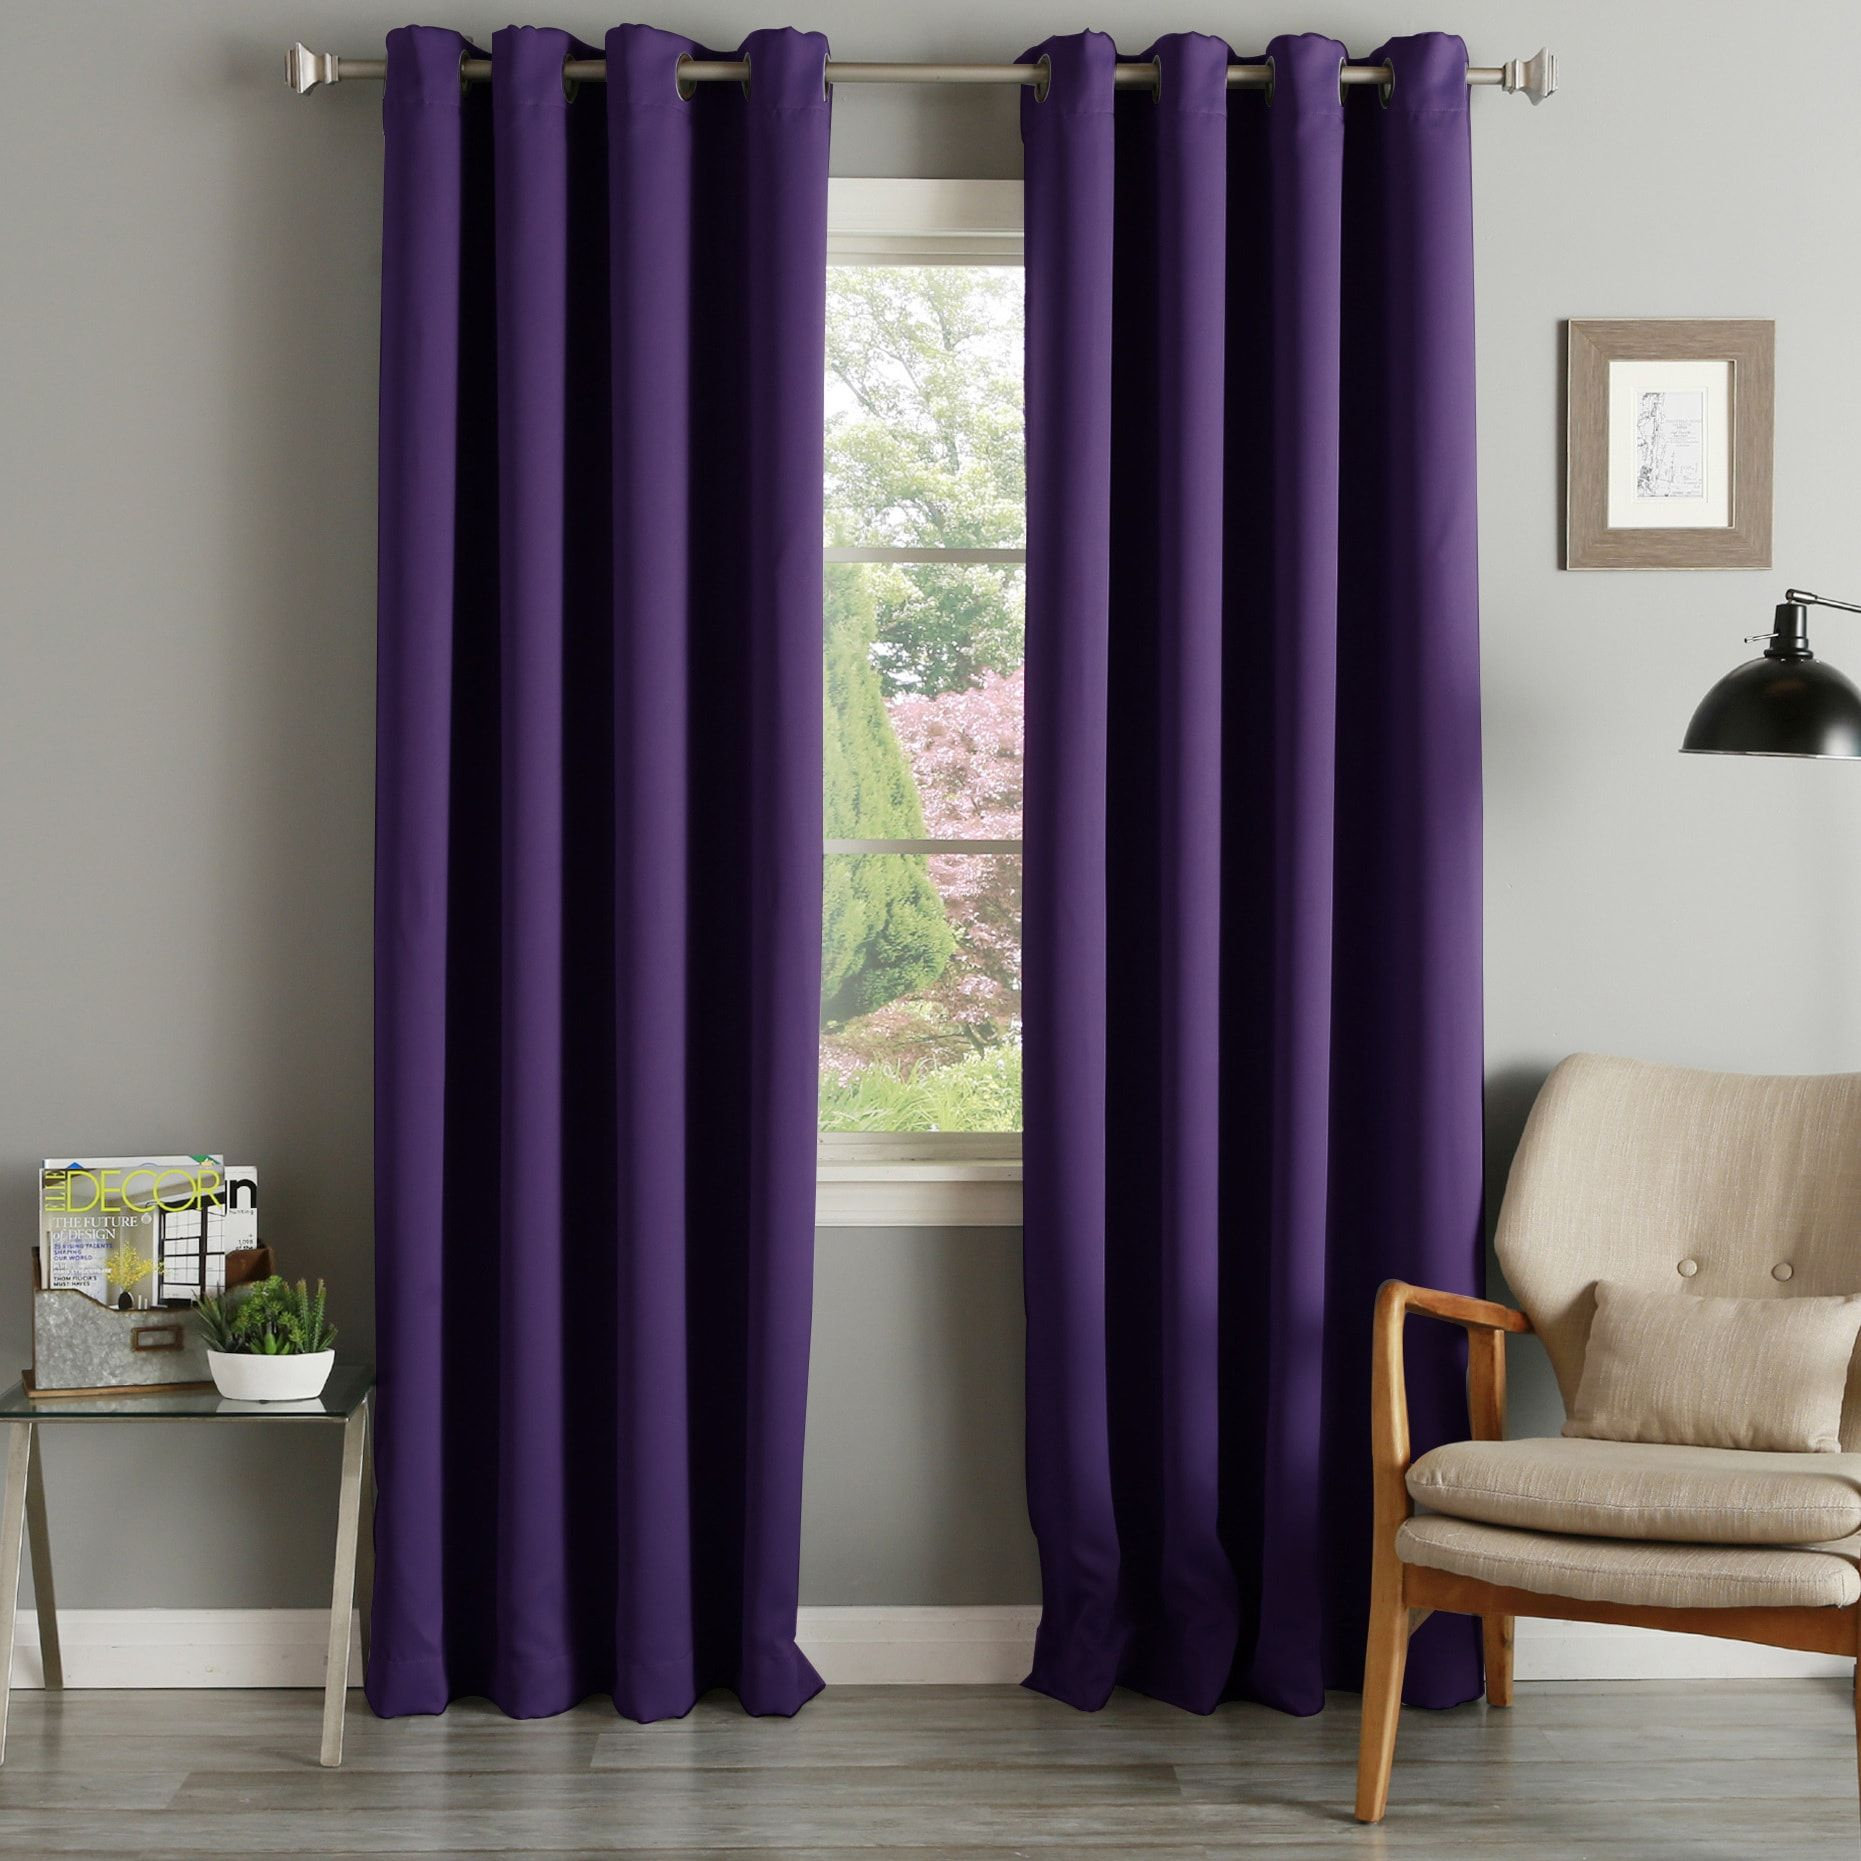 Aurora Home Grommet Top Thermal Insulated 96 Inch Blackout Pertaining To Insulated Thermal Blackout Curtain Panel Pairs (View 3 of 20)